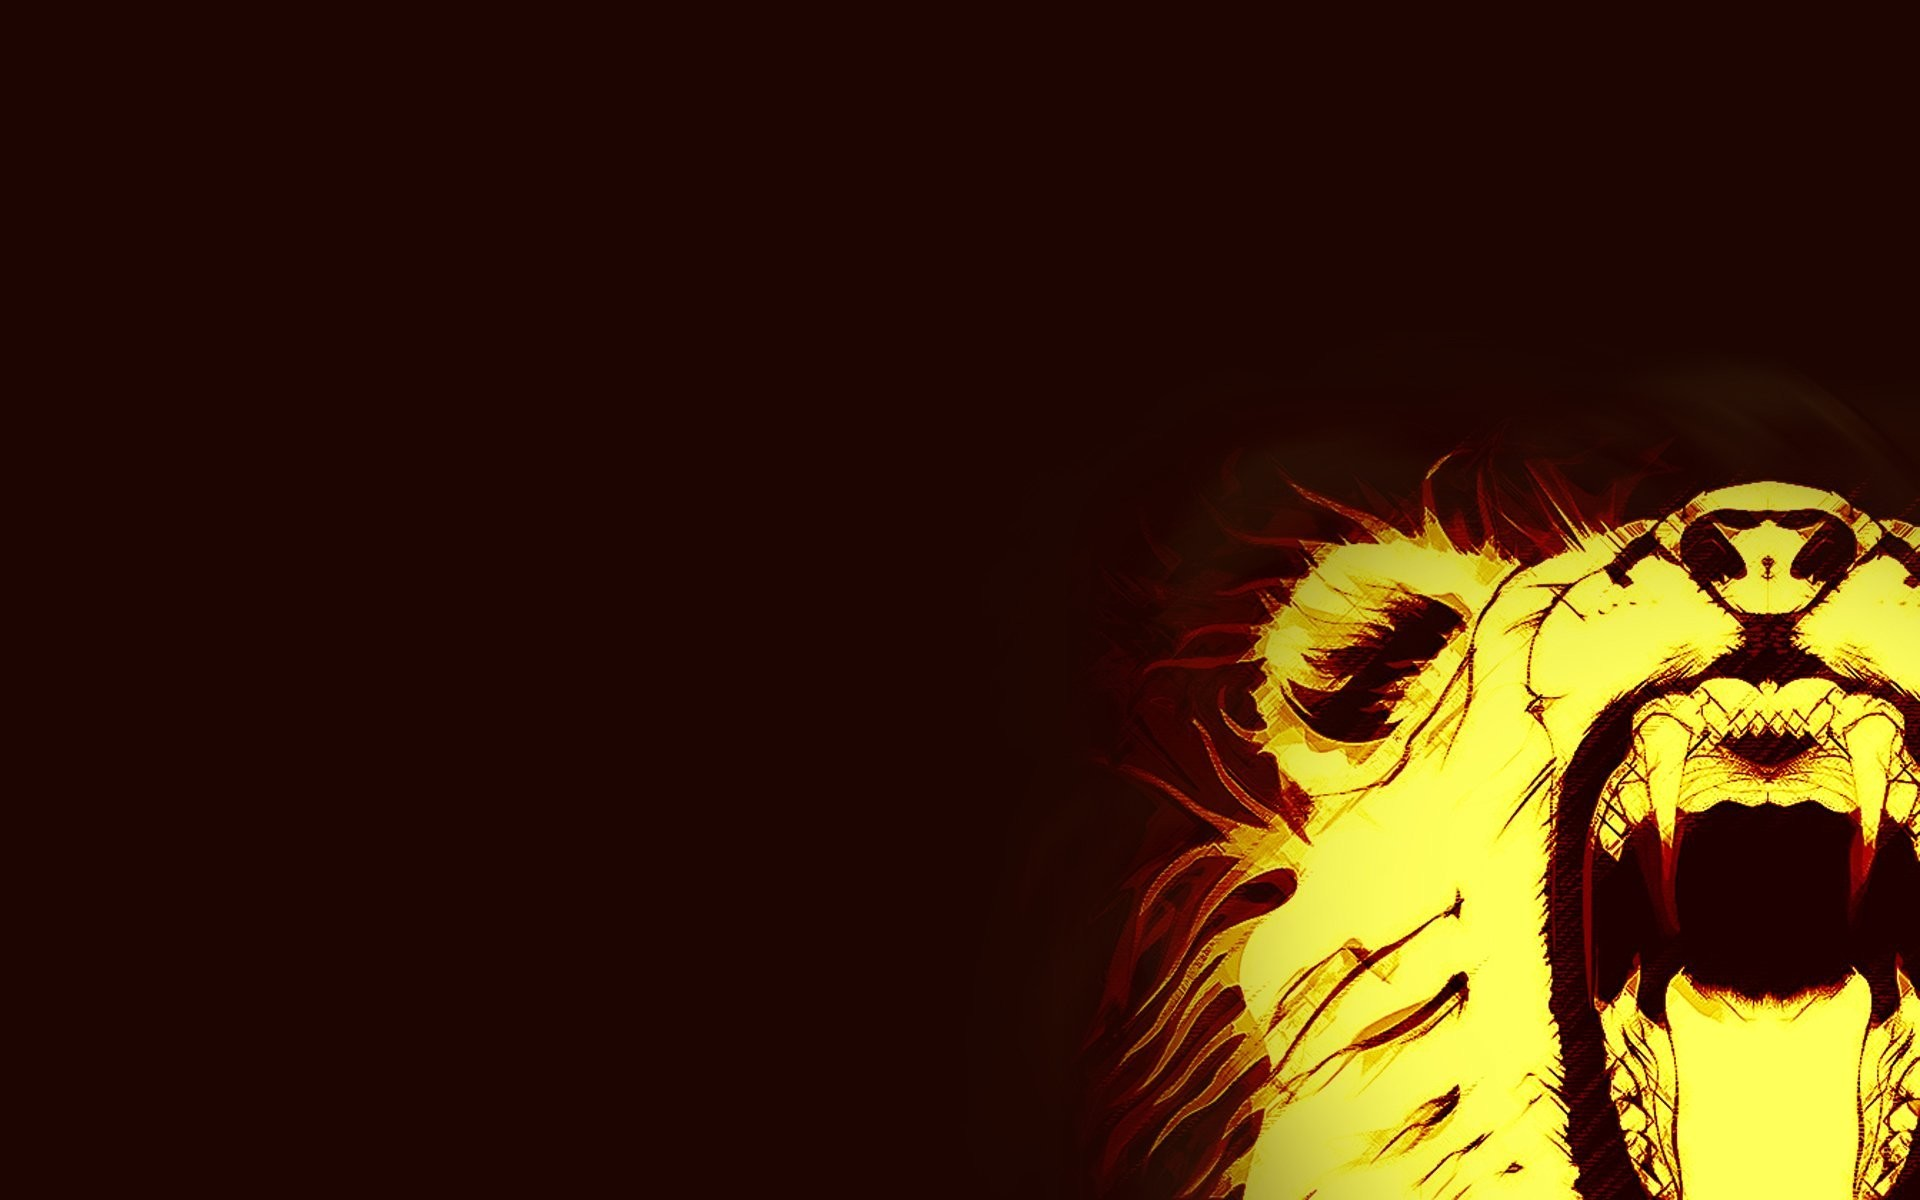 1920x1200 minimalism fire leo abstract animals lion fire fangs